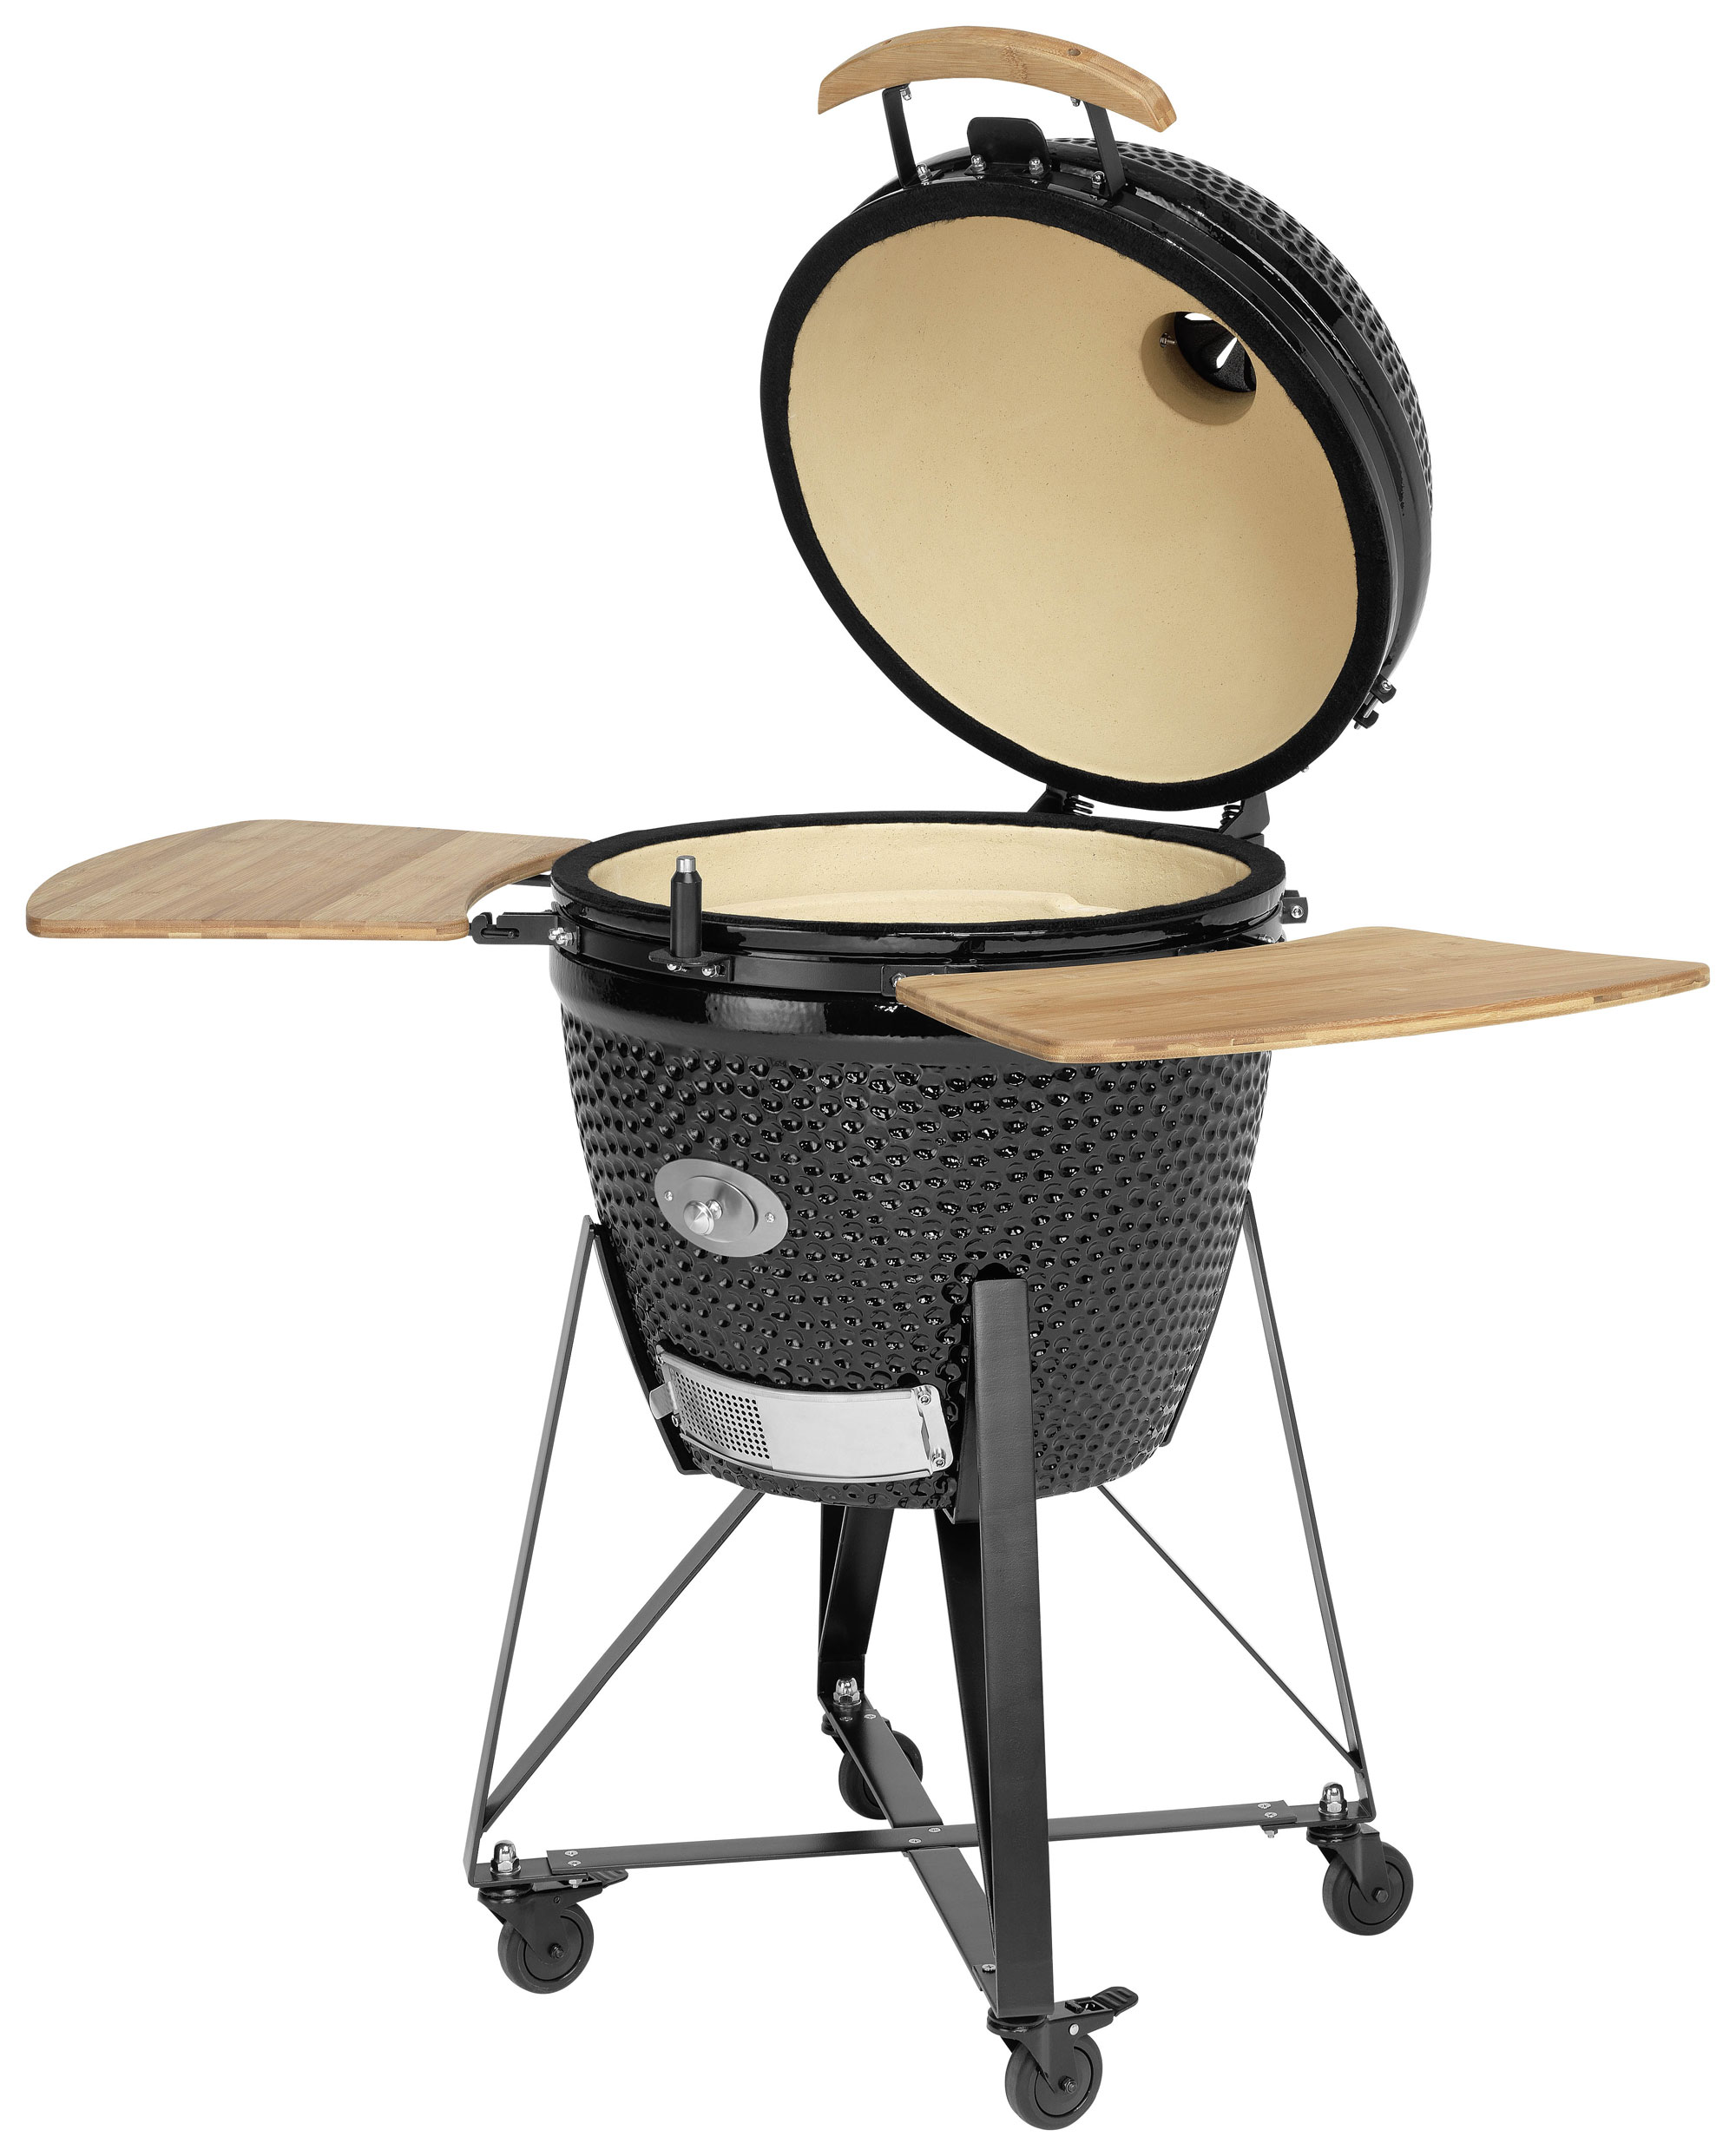 Holzgrill / Keramikgrill Justus Black J'Egg XL Chip Supply Ø47cm Bild 2